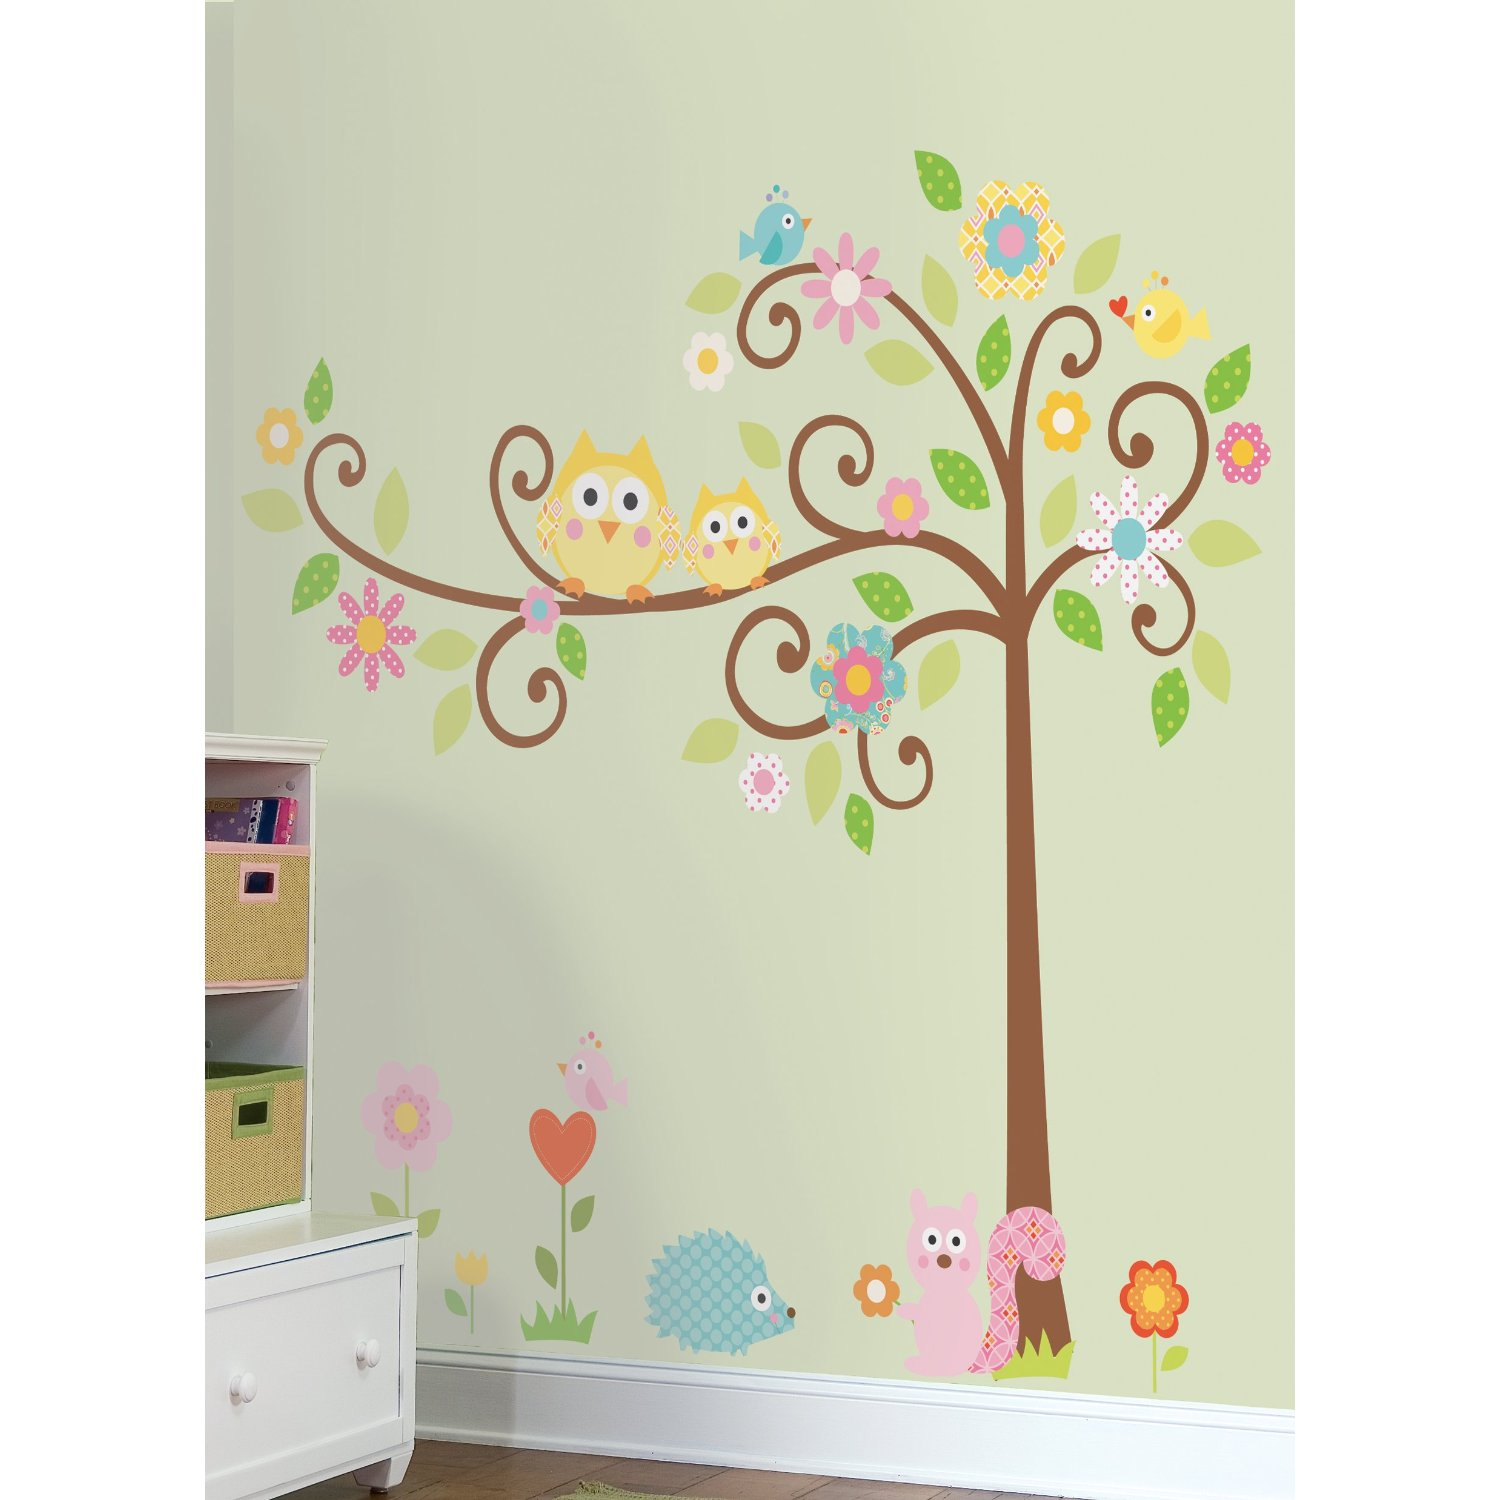 Nursery room ideas nursery wall decals for Baby room mural ideas